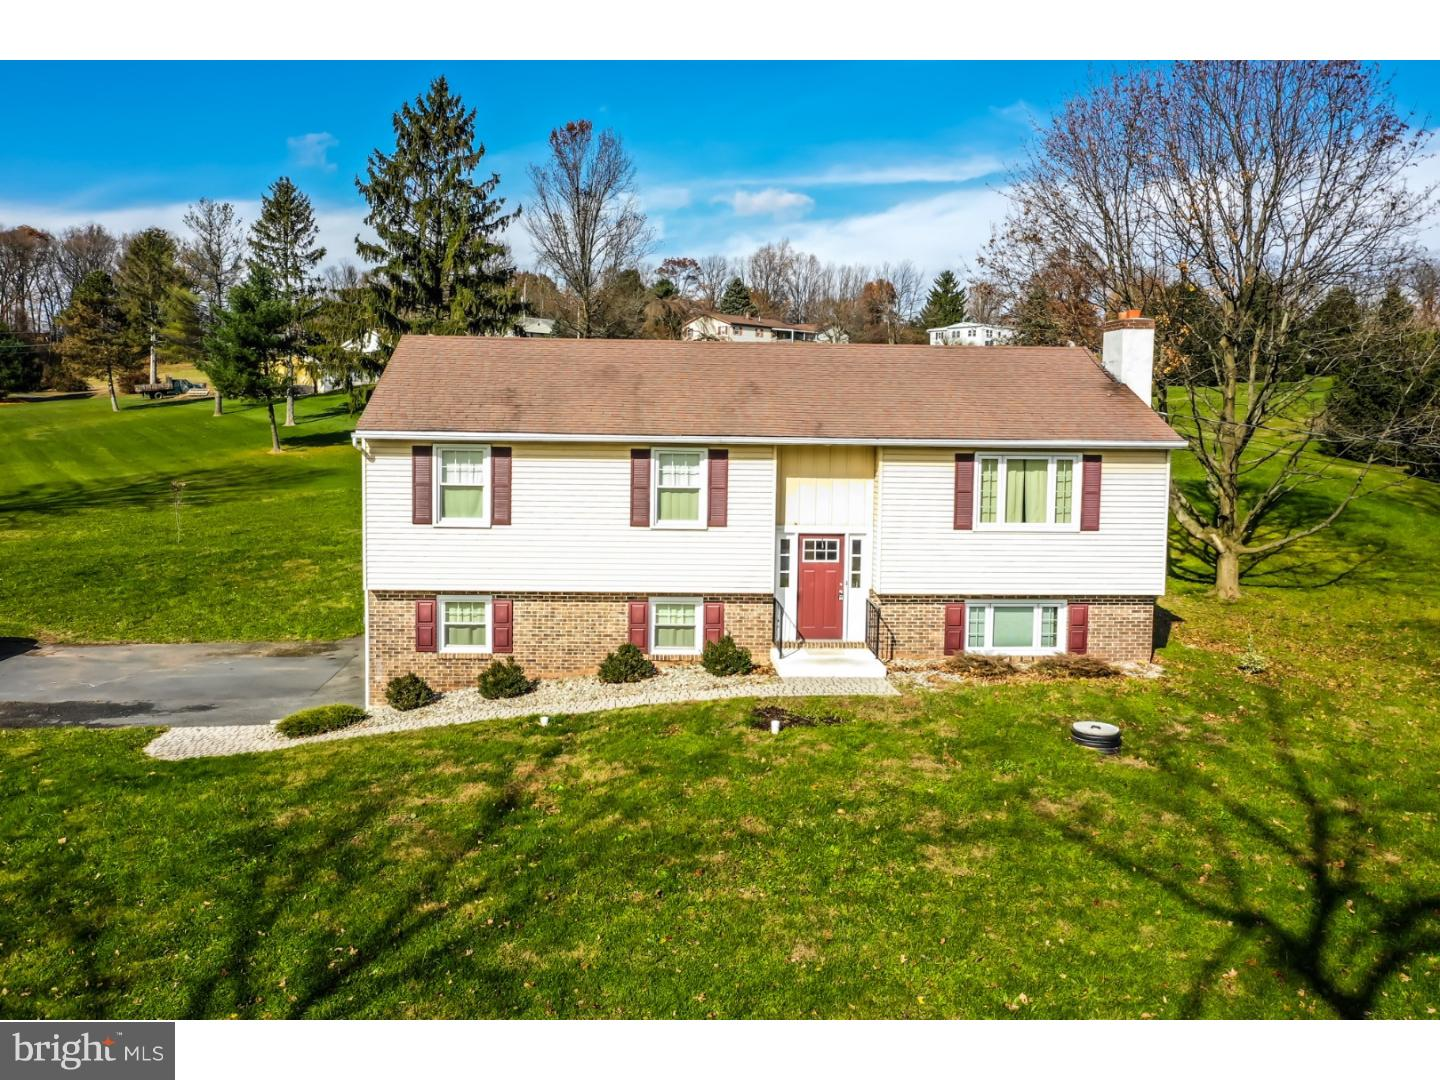 2364 HOPEWELL ROAD, ELVERSON, PA 19520